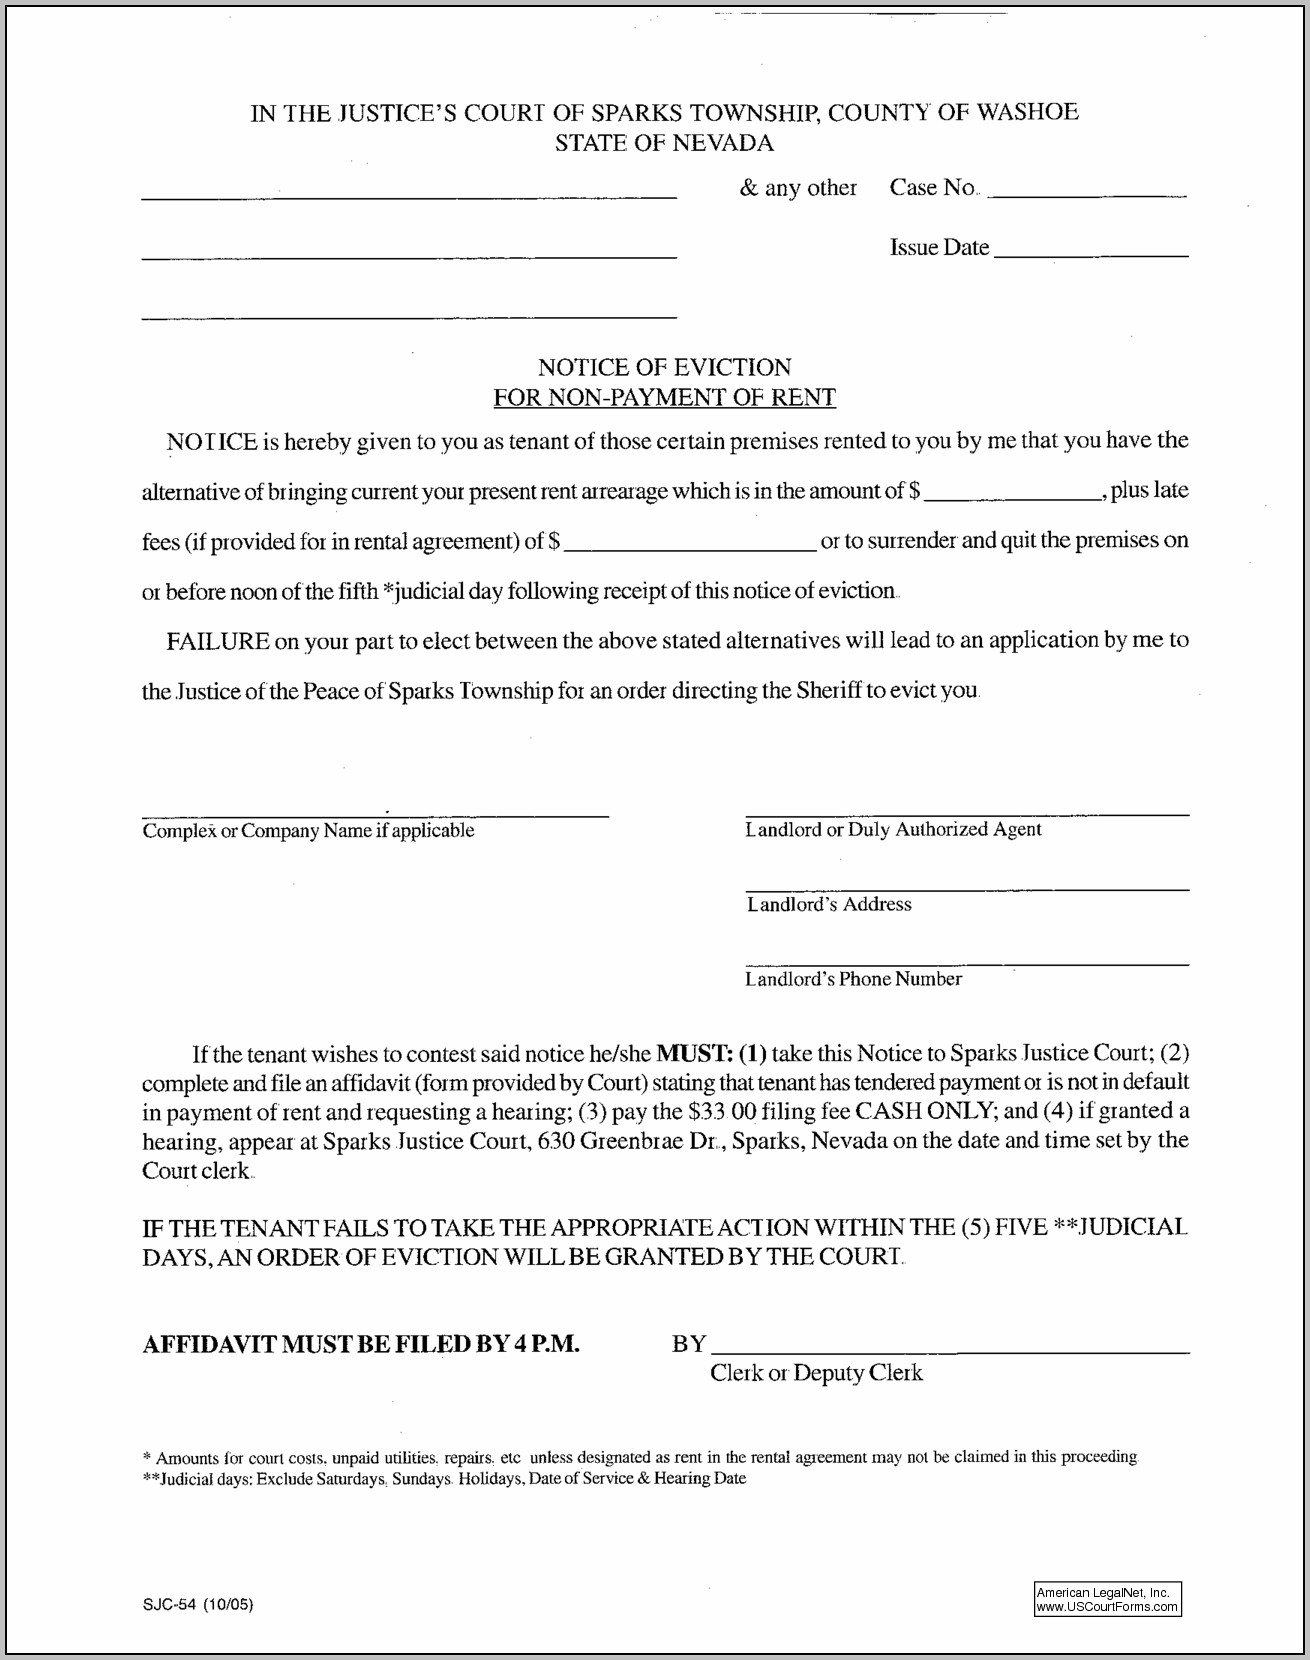 Eviction Notice Form New York State